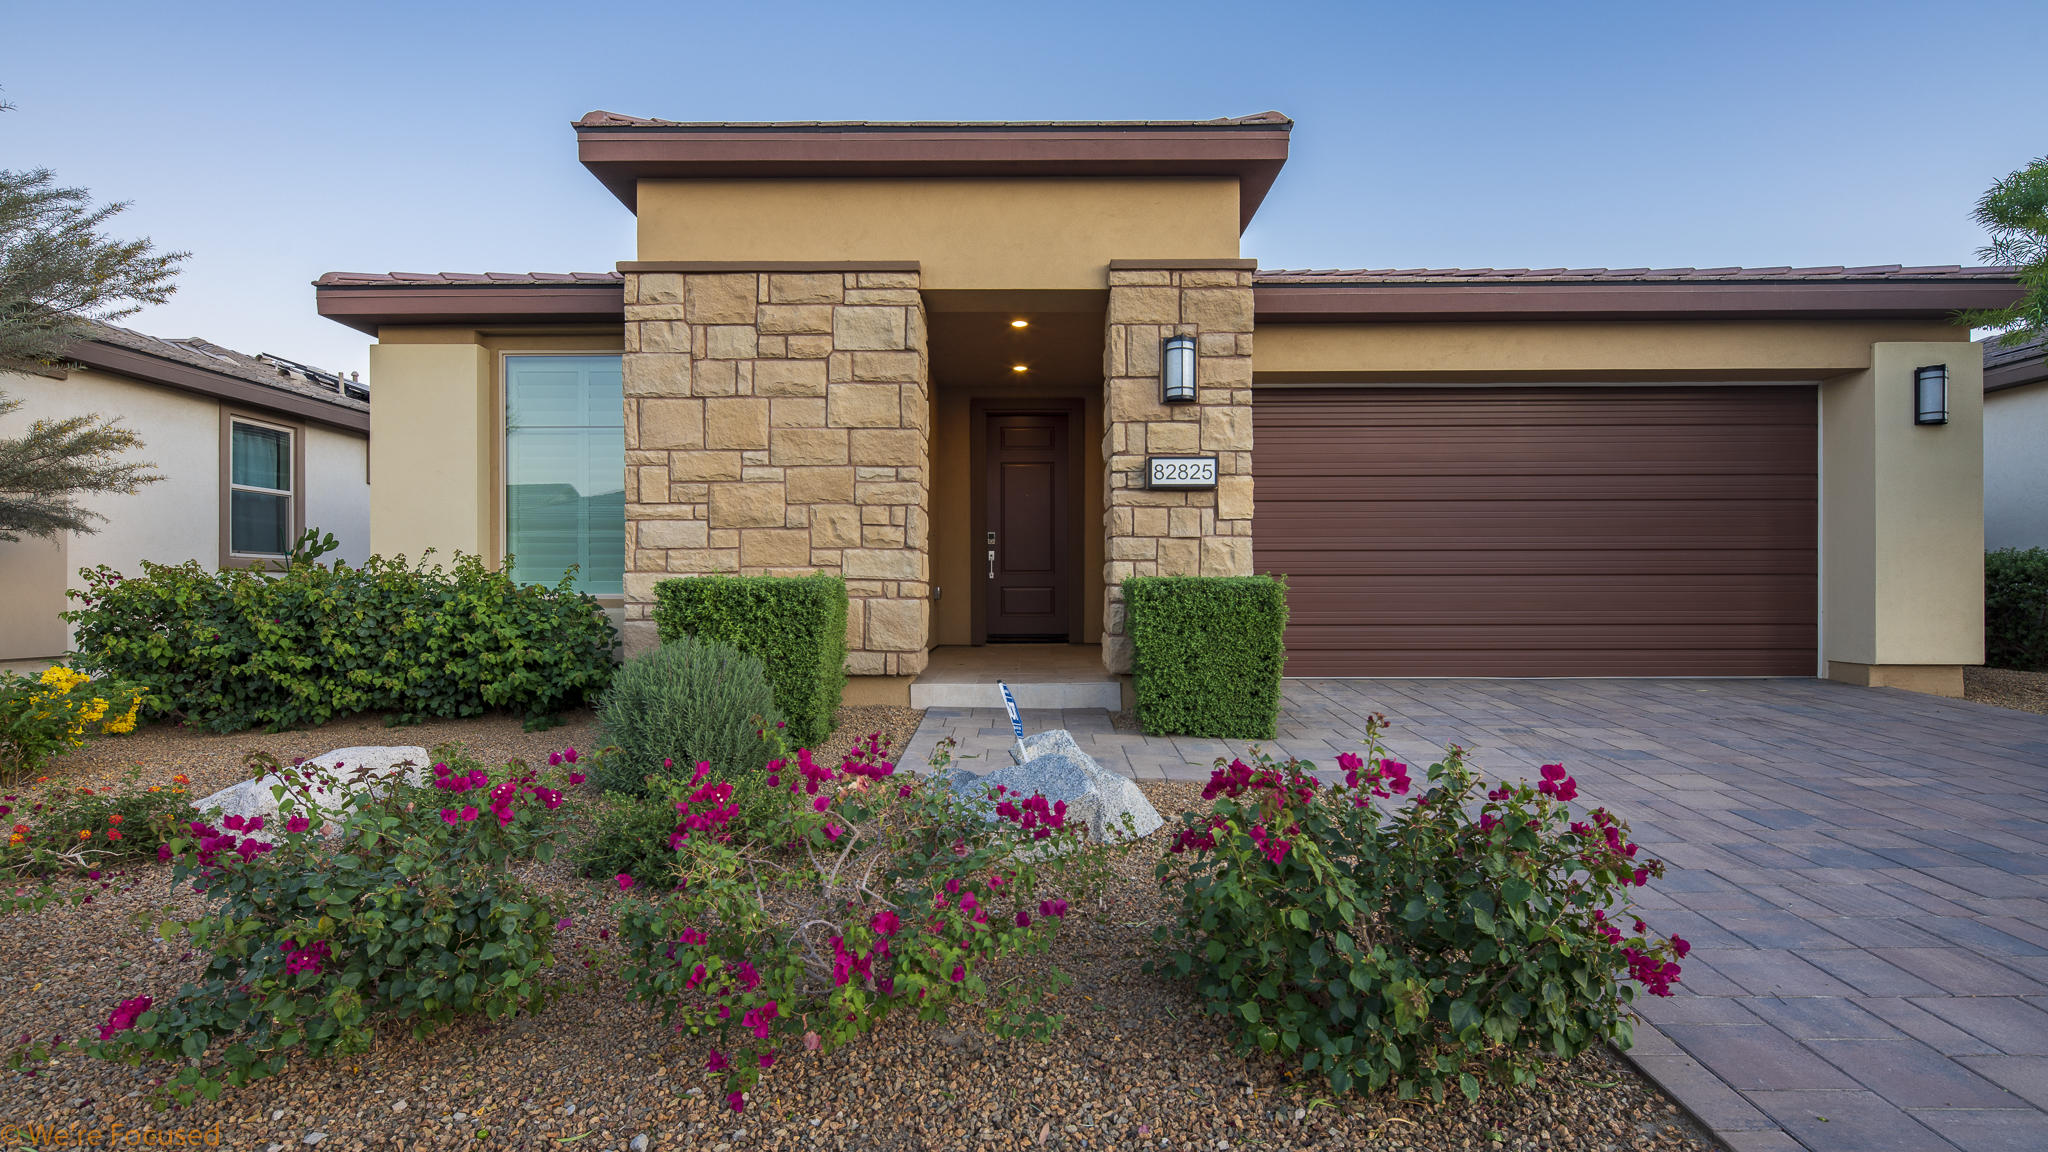 Photo of 82825 Spirit Mountain Drive, Indio, CA 92201